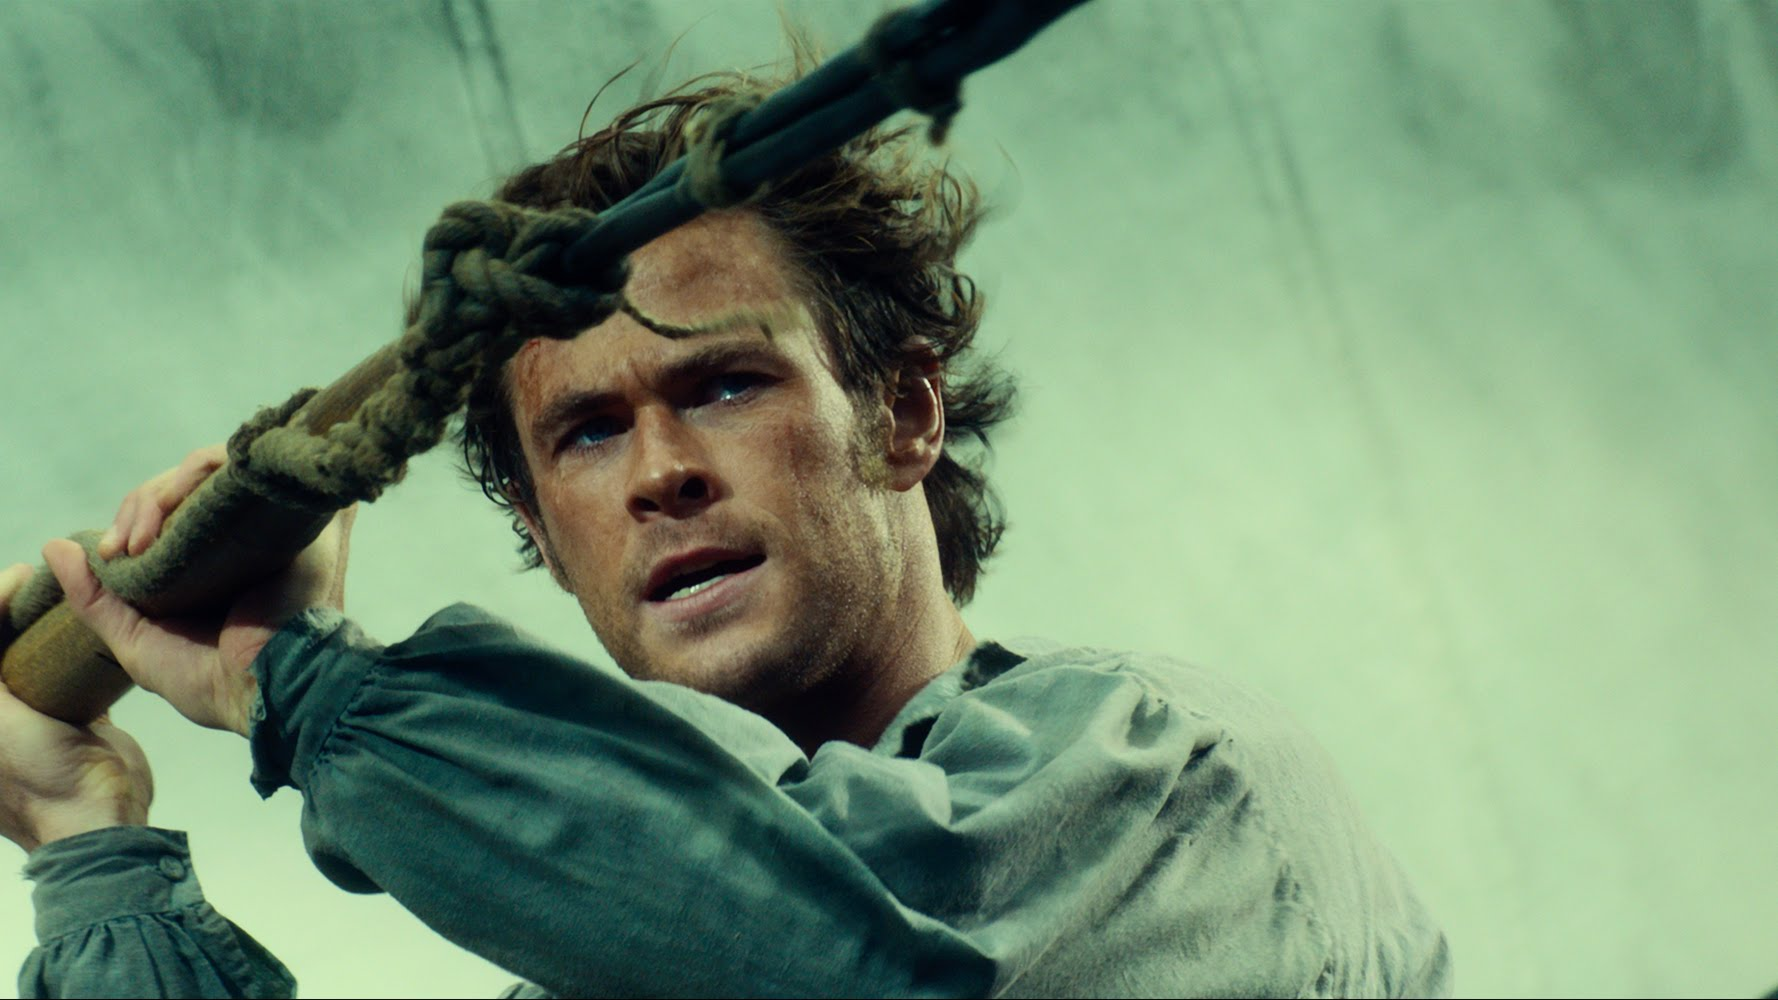 MOBY DICK FILM ABOUT MOBY DICK NOT MOBY DICK